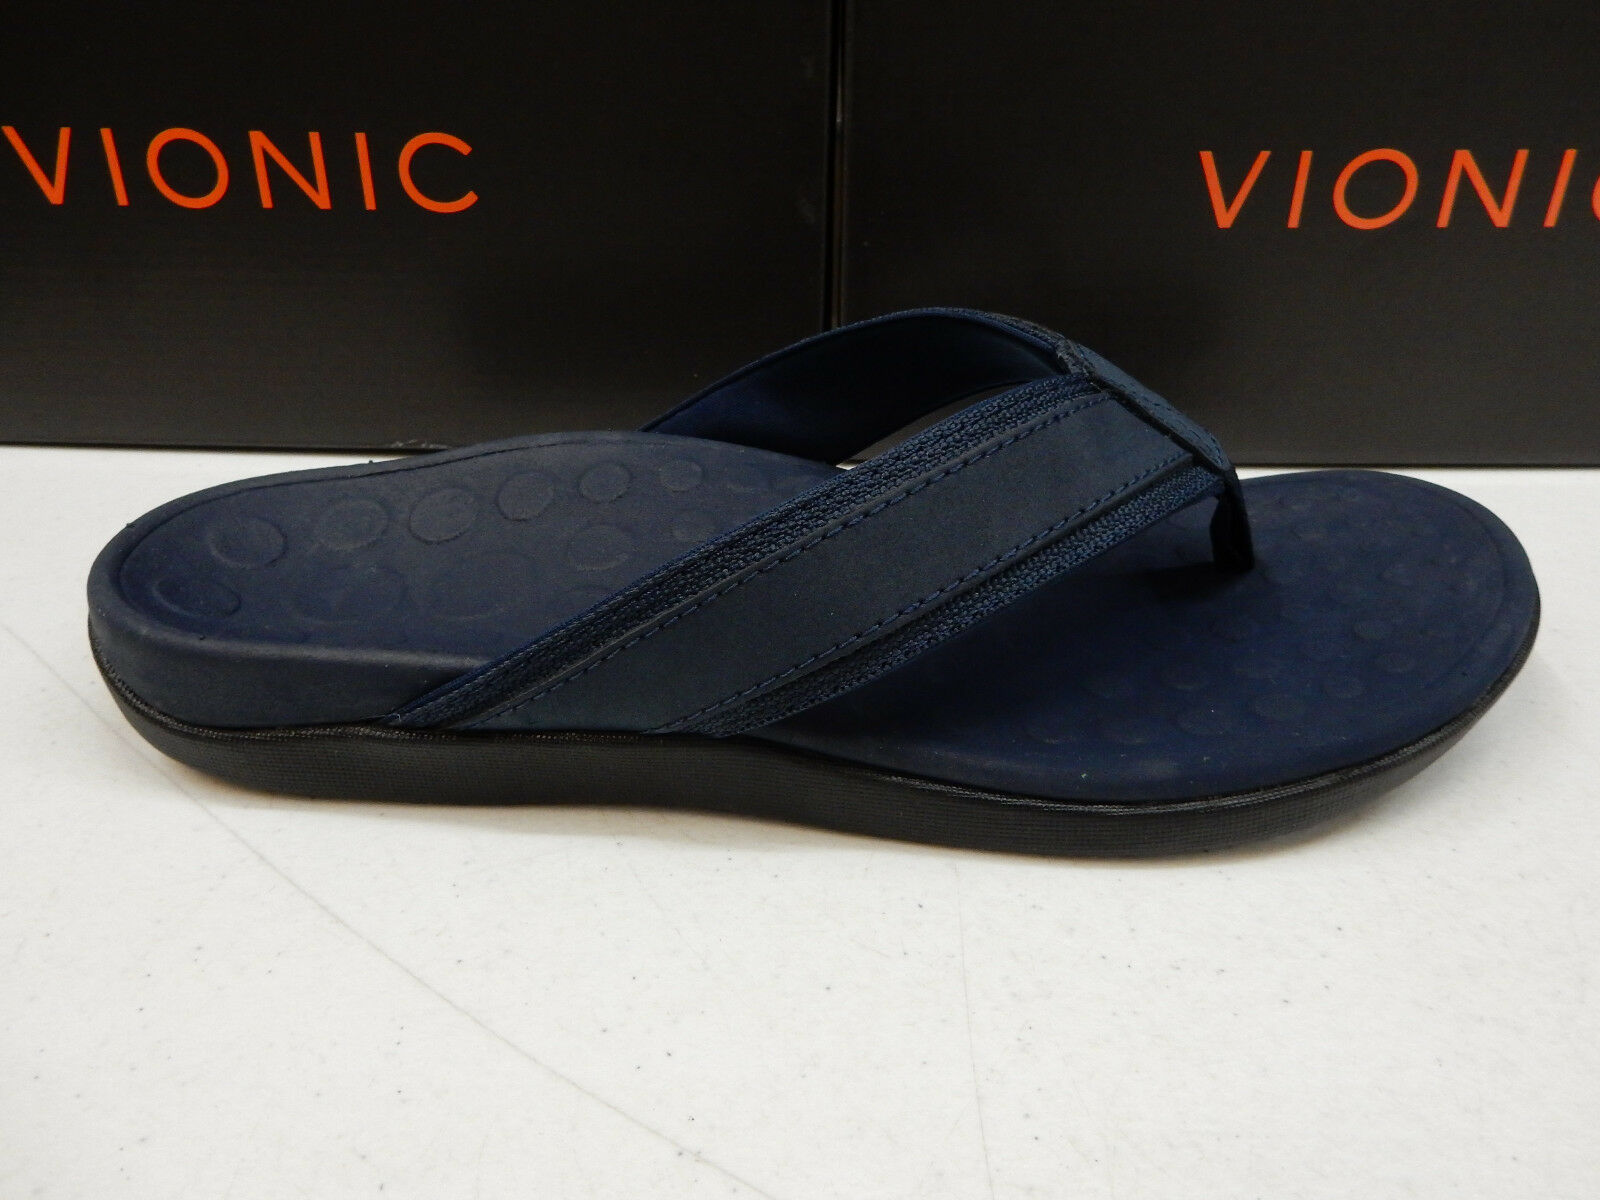 VIONIC Uomo SANDALS TIDE NAVY SIZE 13